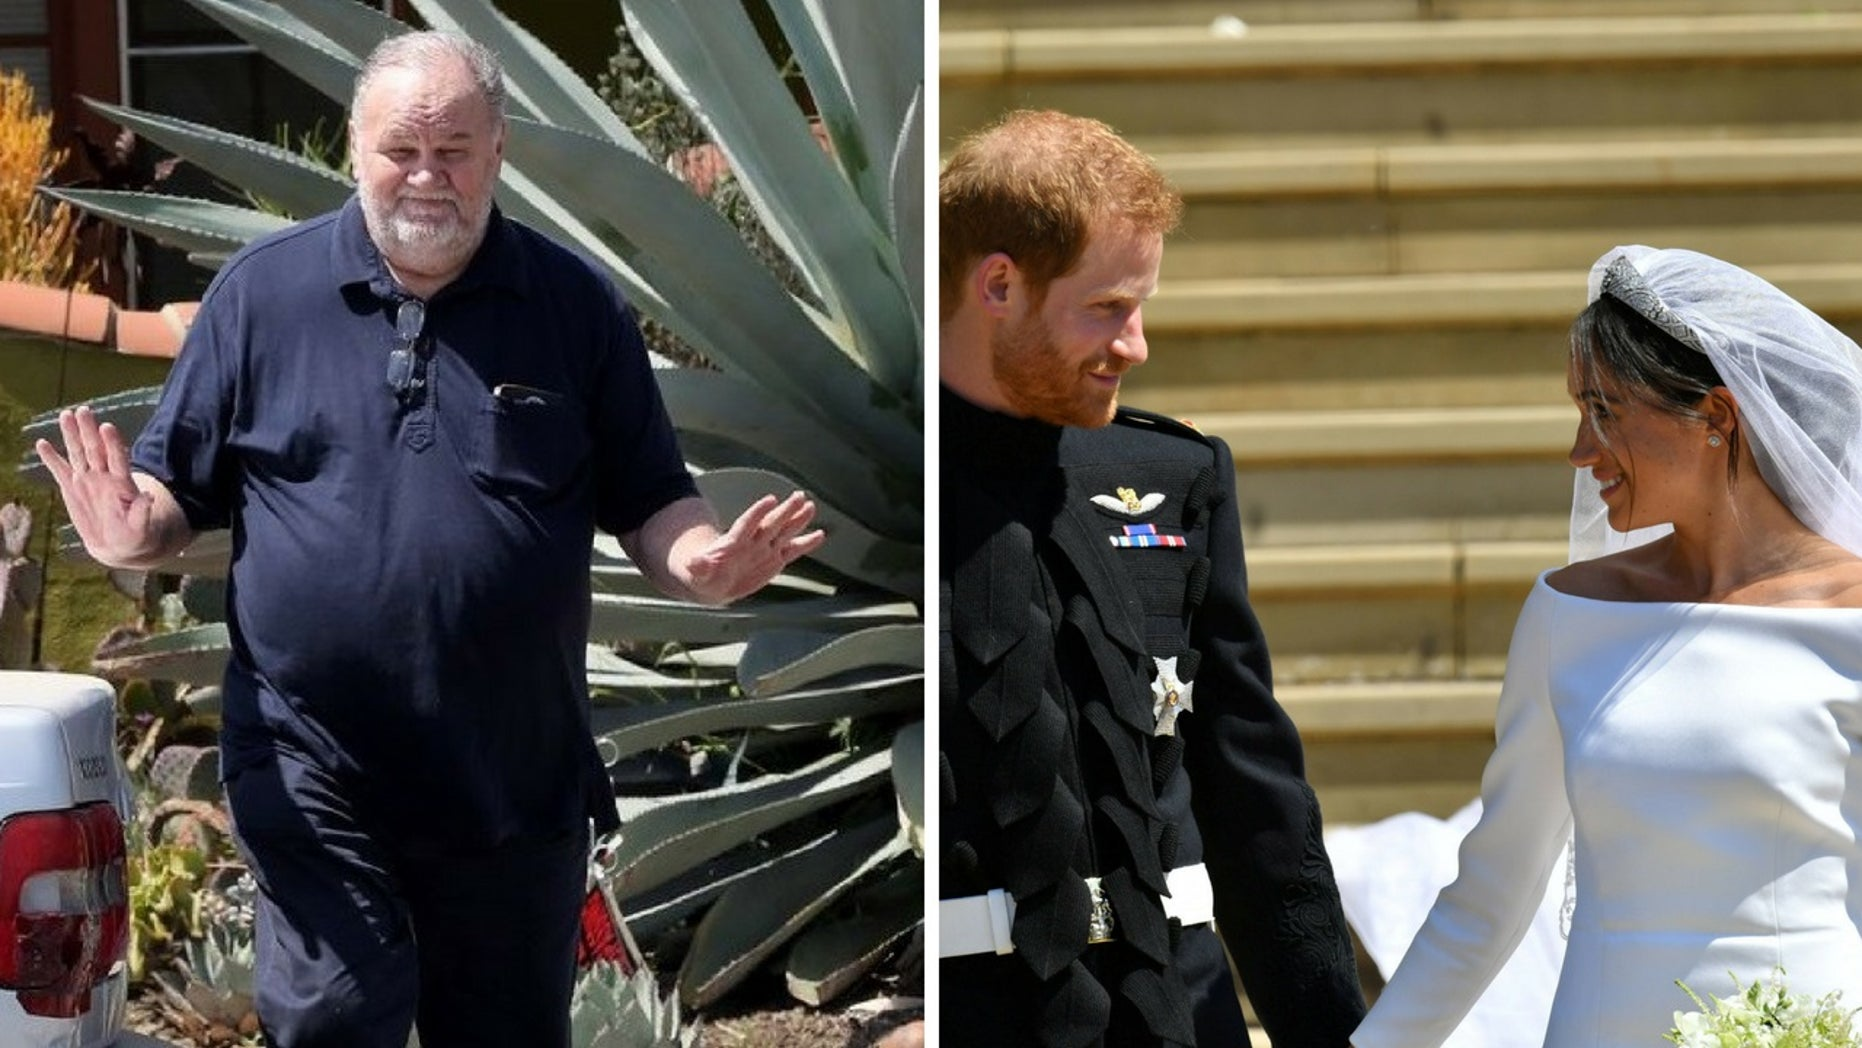 Thomas Markle, Meghan Markle's father, said he wished he was at the royal wedding on Saturday, May 19, 2018.